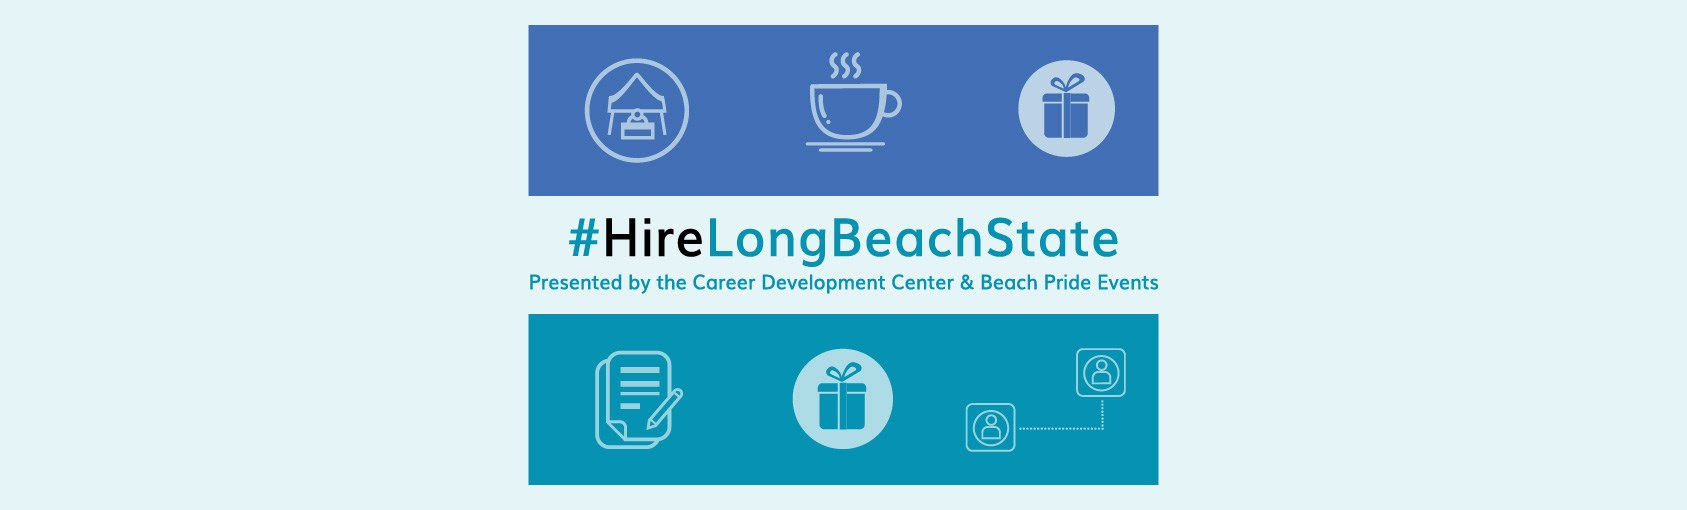 Hire Long Beach State banner